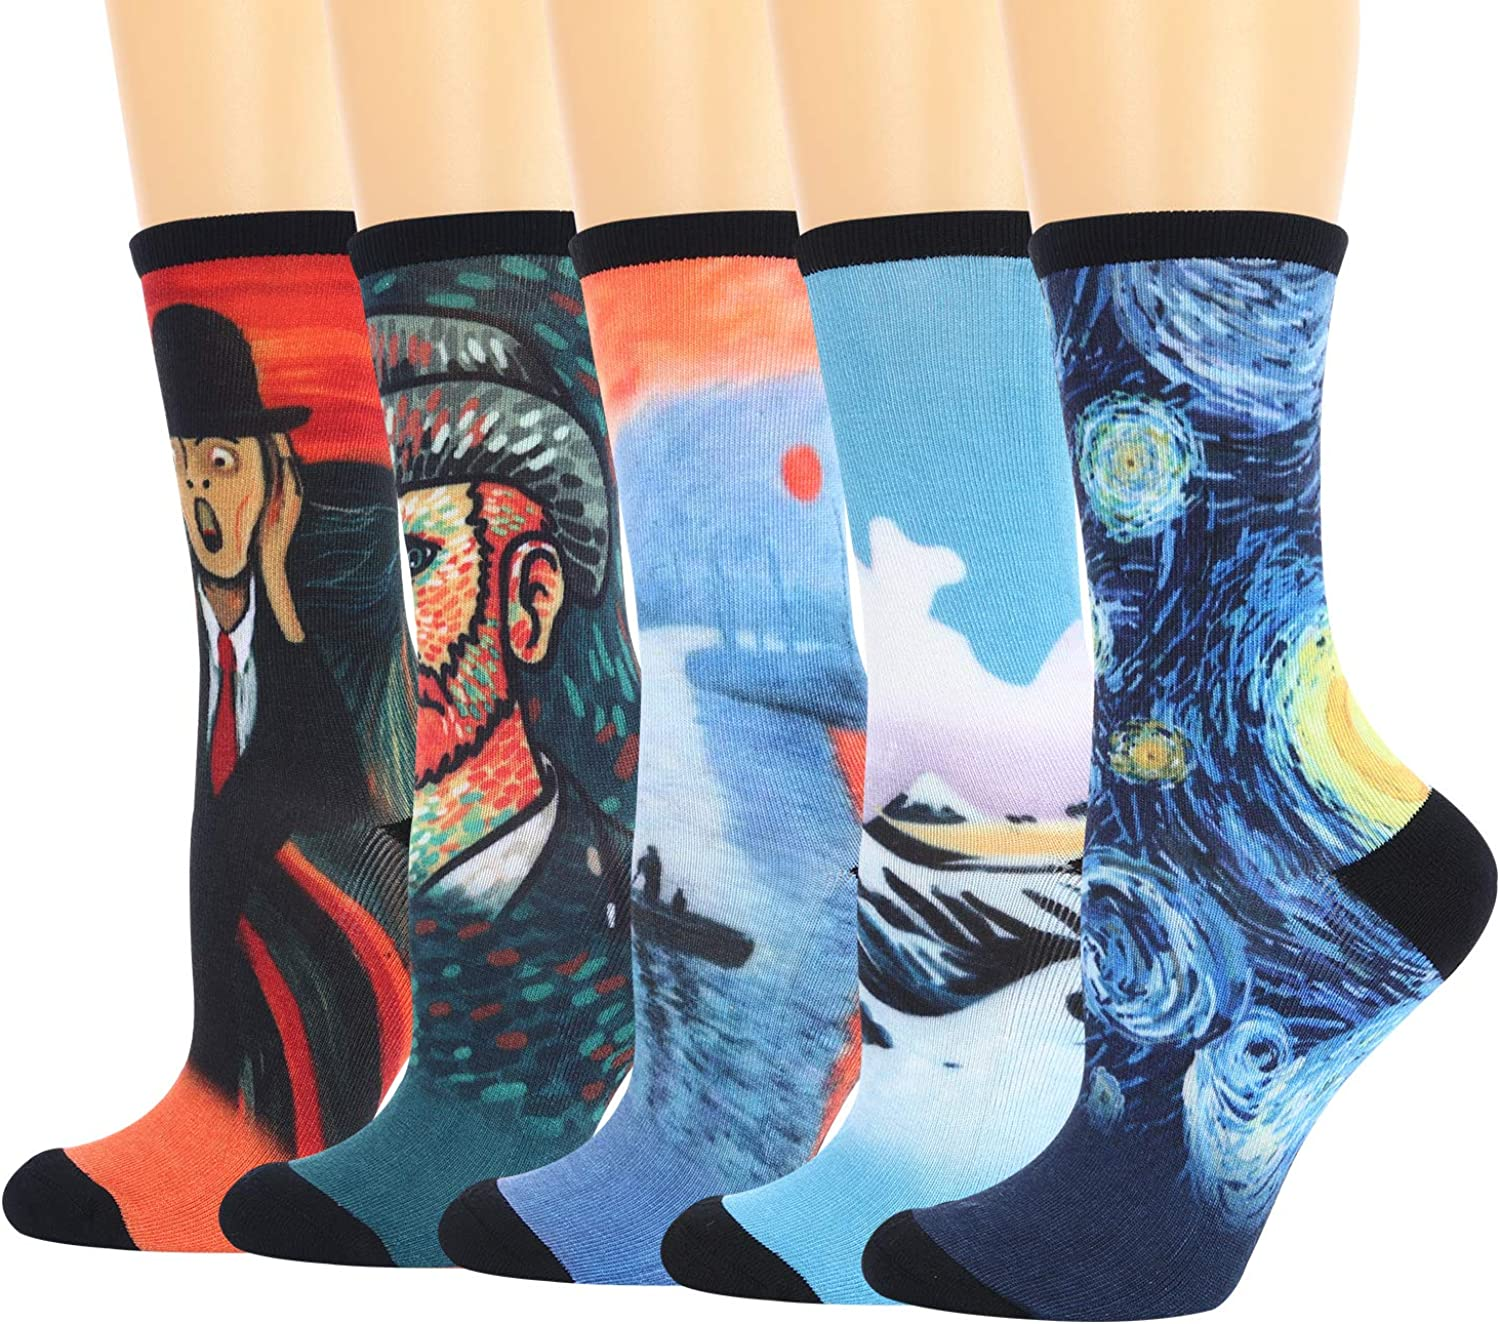 +MD Men's Colorful Novelty Bamboo Dress Crew Socks Funny Crazy Printed Patterned Casual Socks 5 Pack 10-13